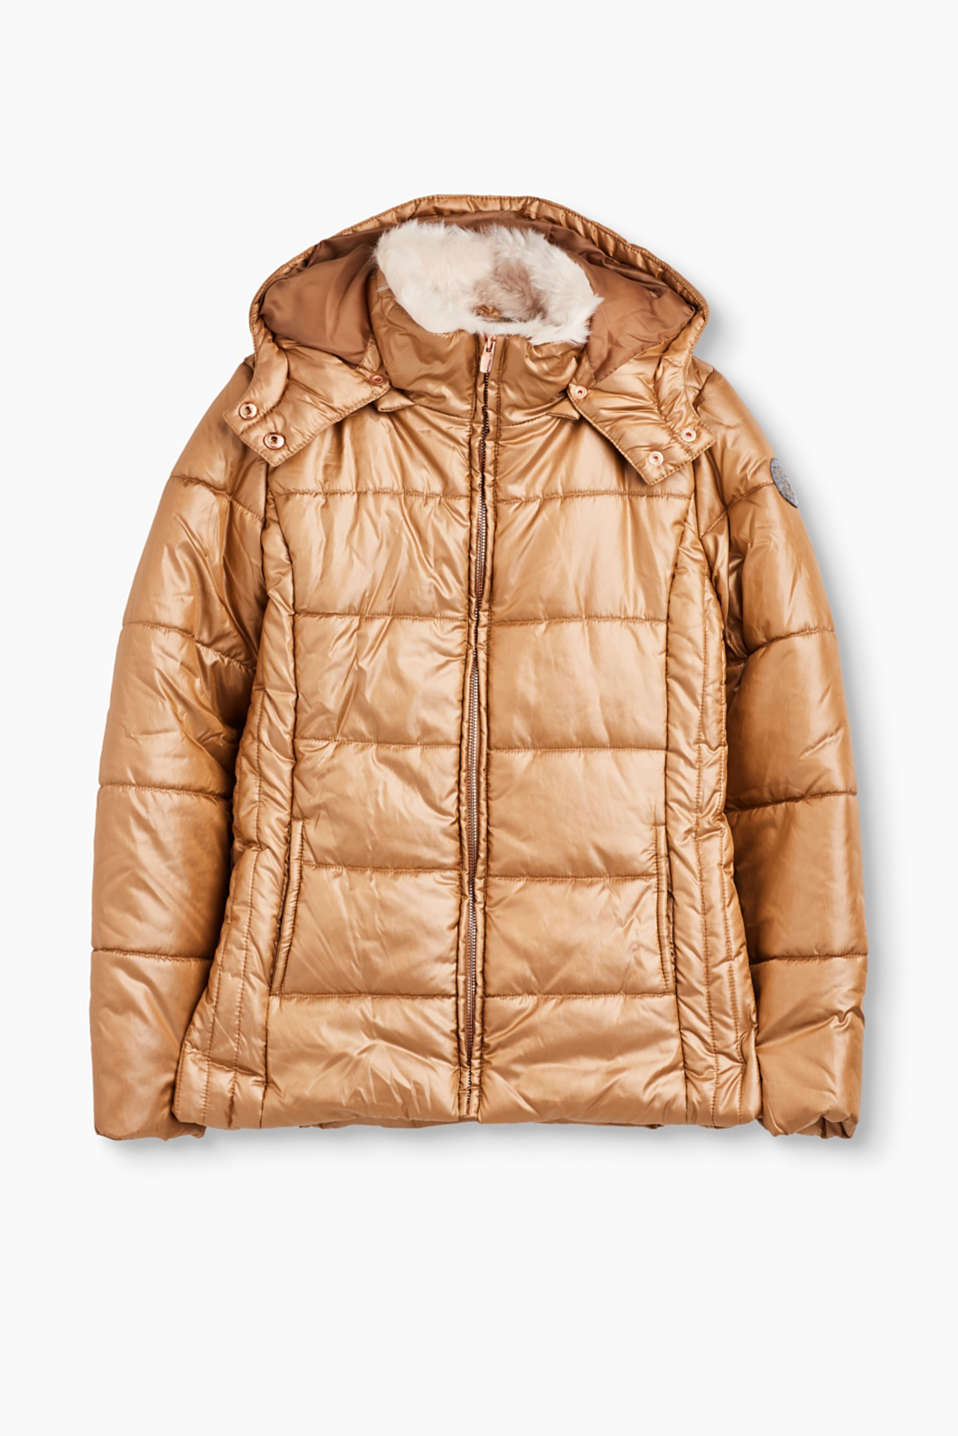 So chic and also super practical: padded quilted jacket with a detachable hood and a collar lined with faux fur